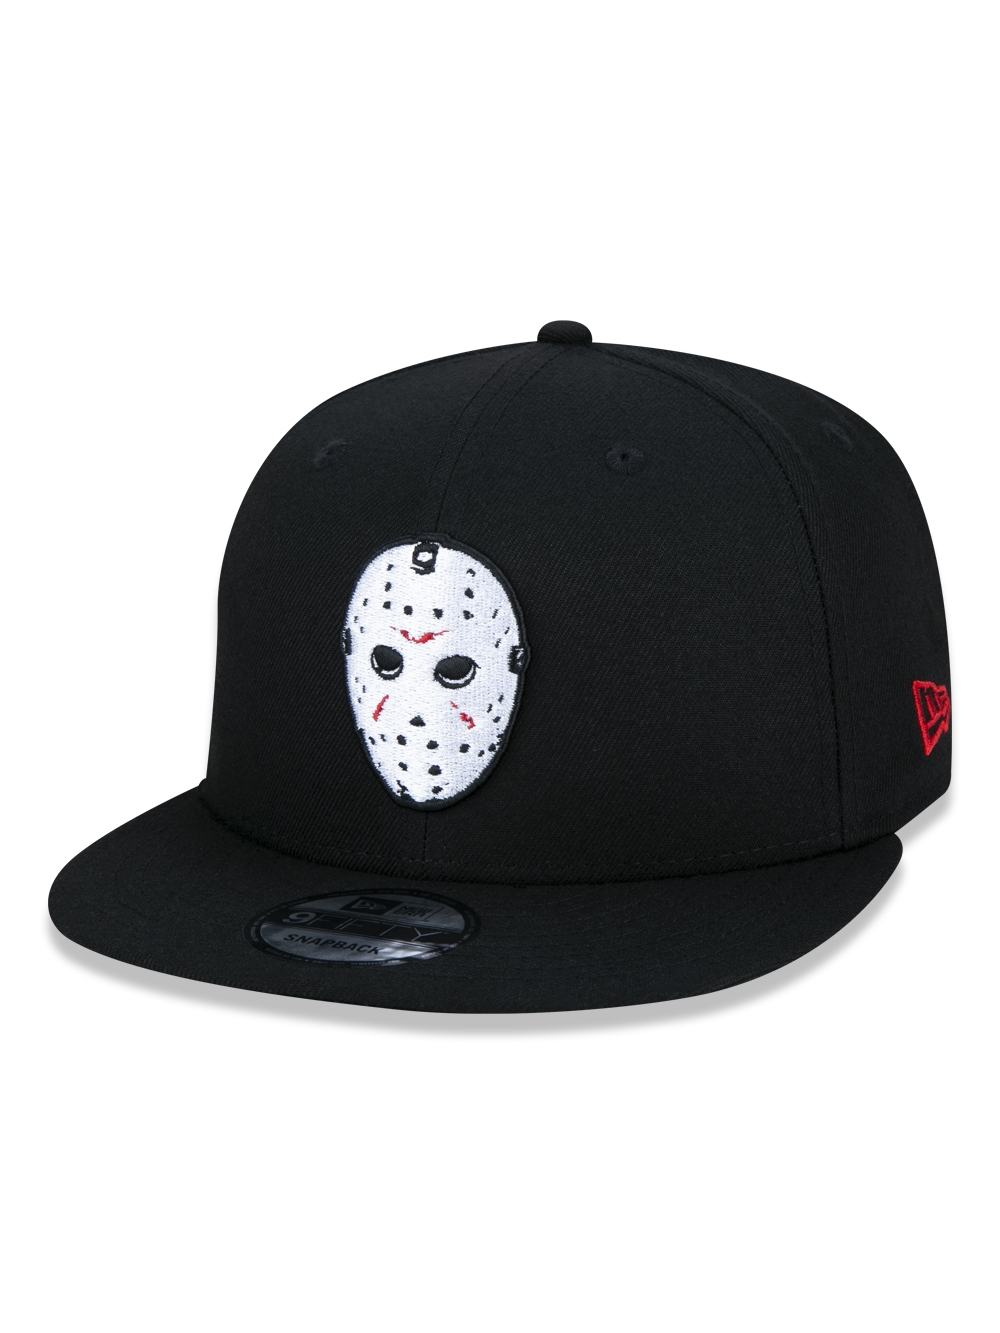 BONÉ NEW ERA 950 FRIDAY THE 13